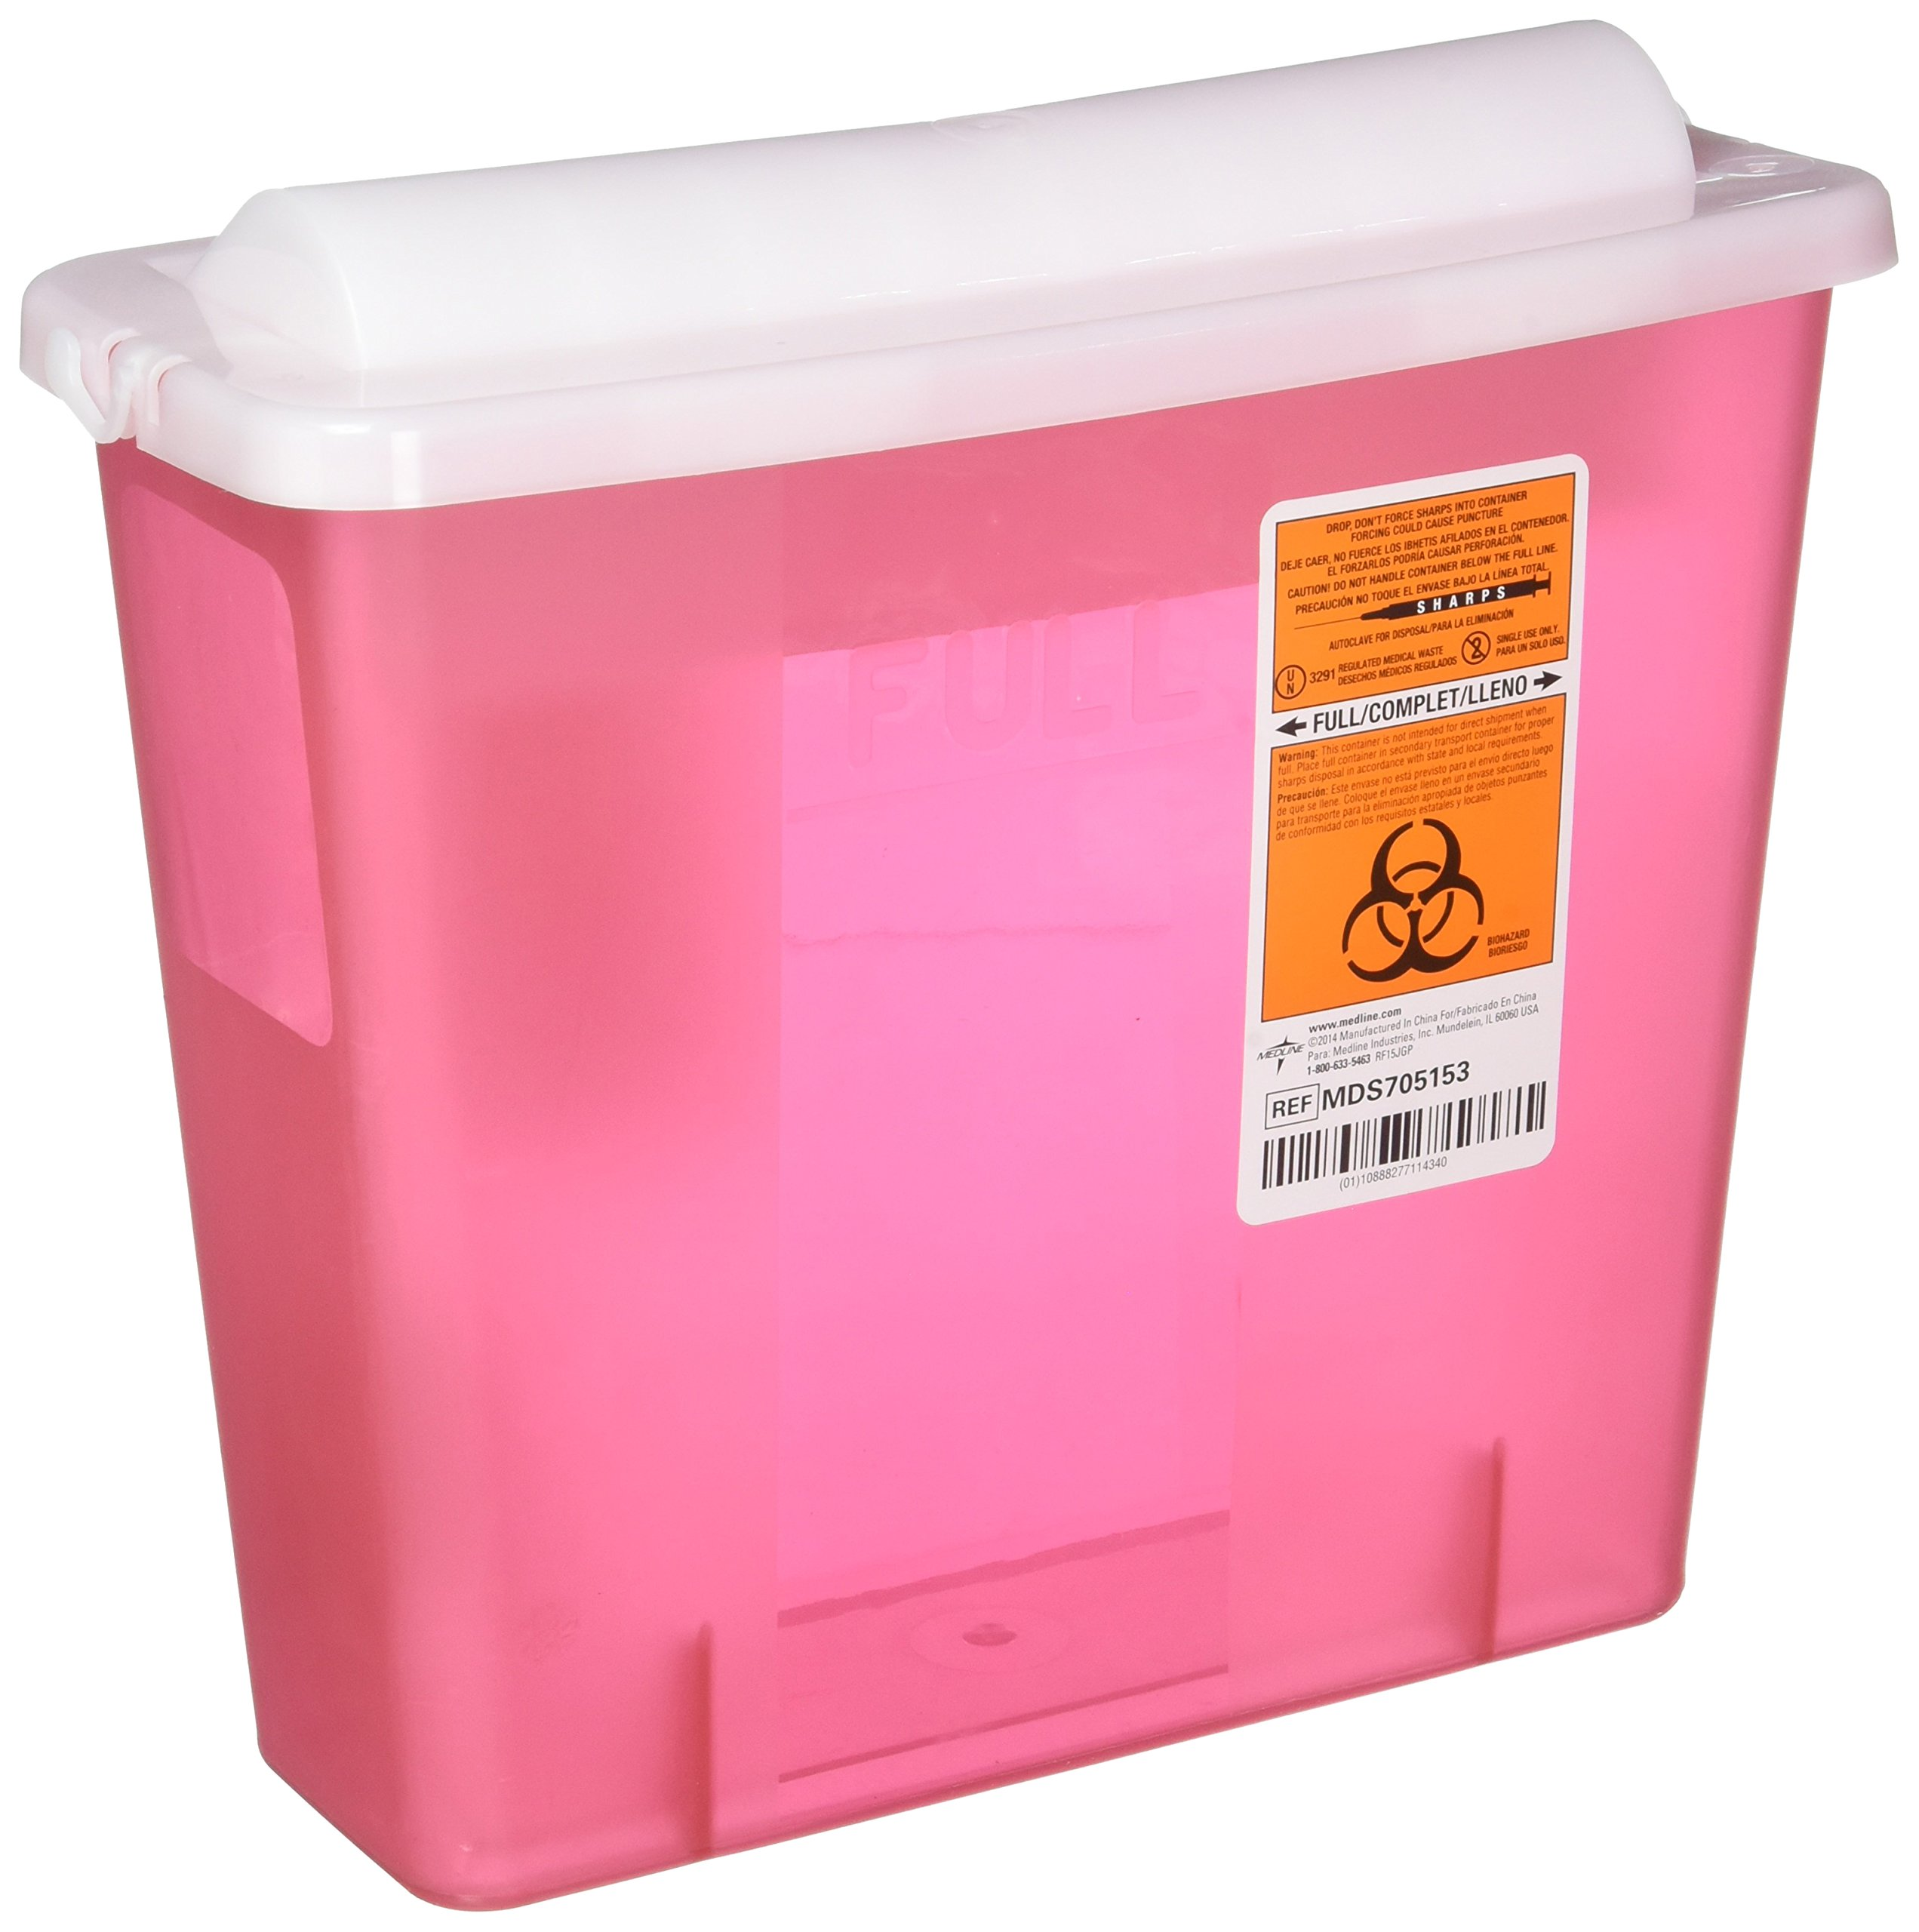 Sharps Disposal Unit, Sharps Container, 5 Quart, Red MDS705153- 1 Each by Medline (Image #1)